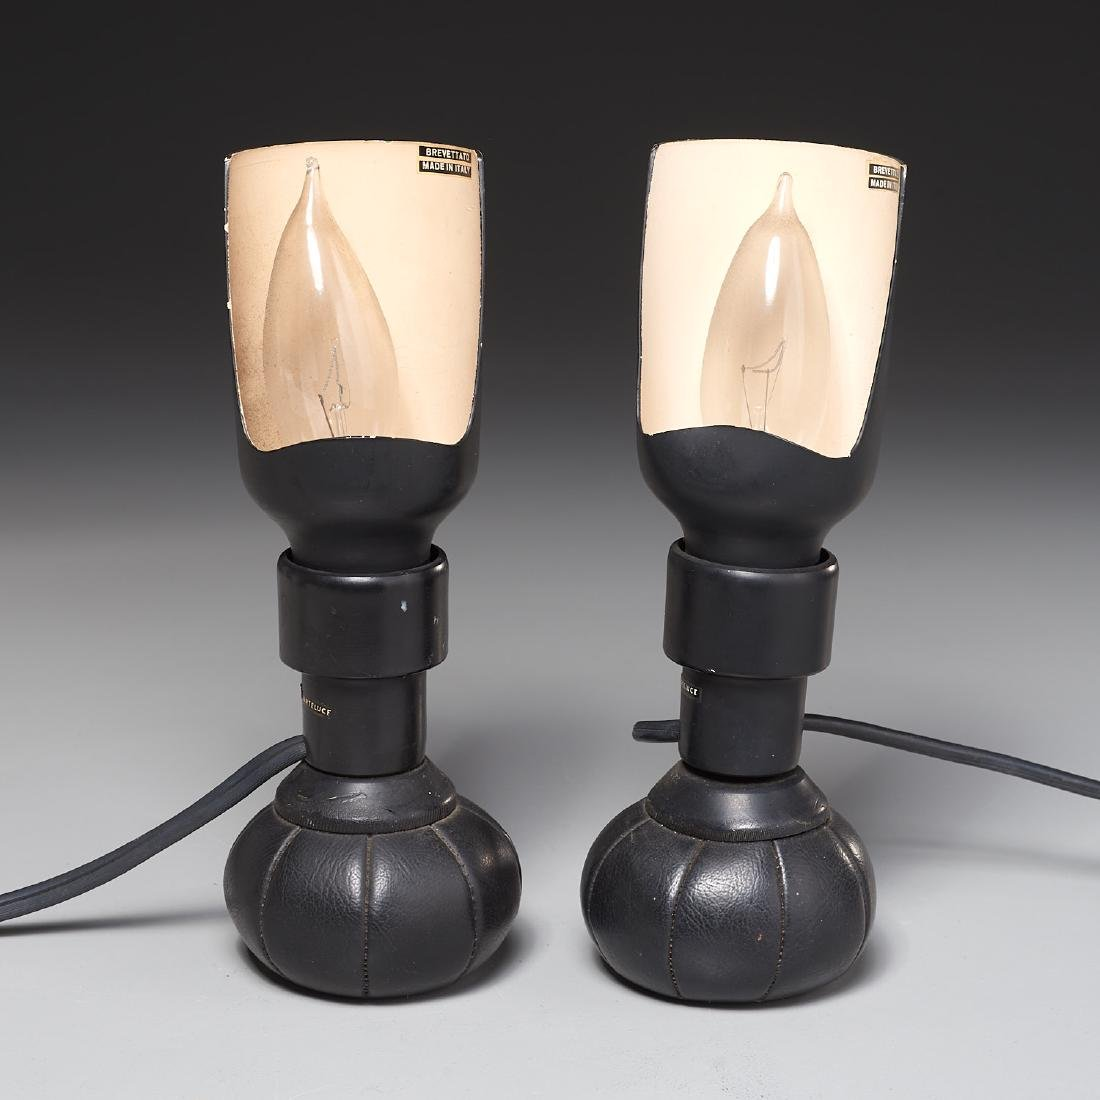 Pair Gino Sarfatti table lamps